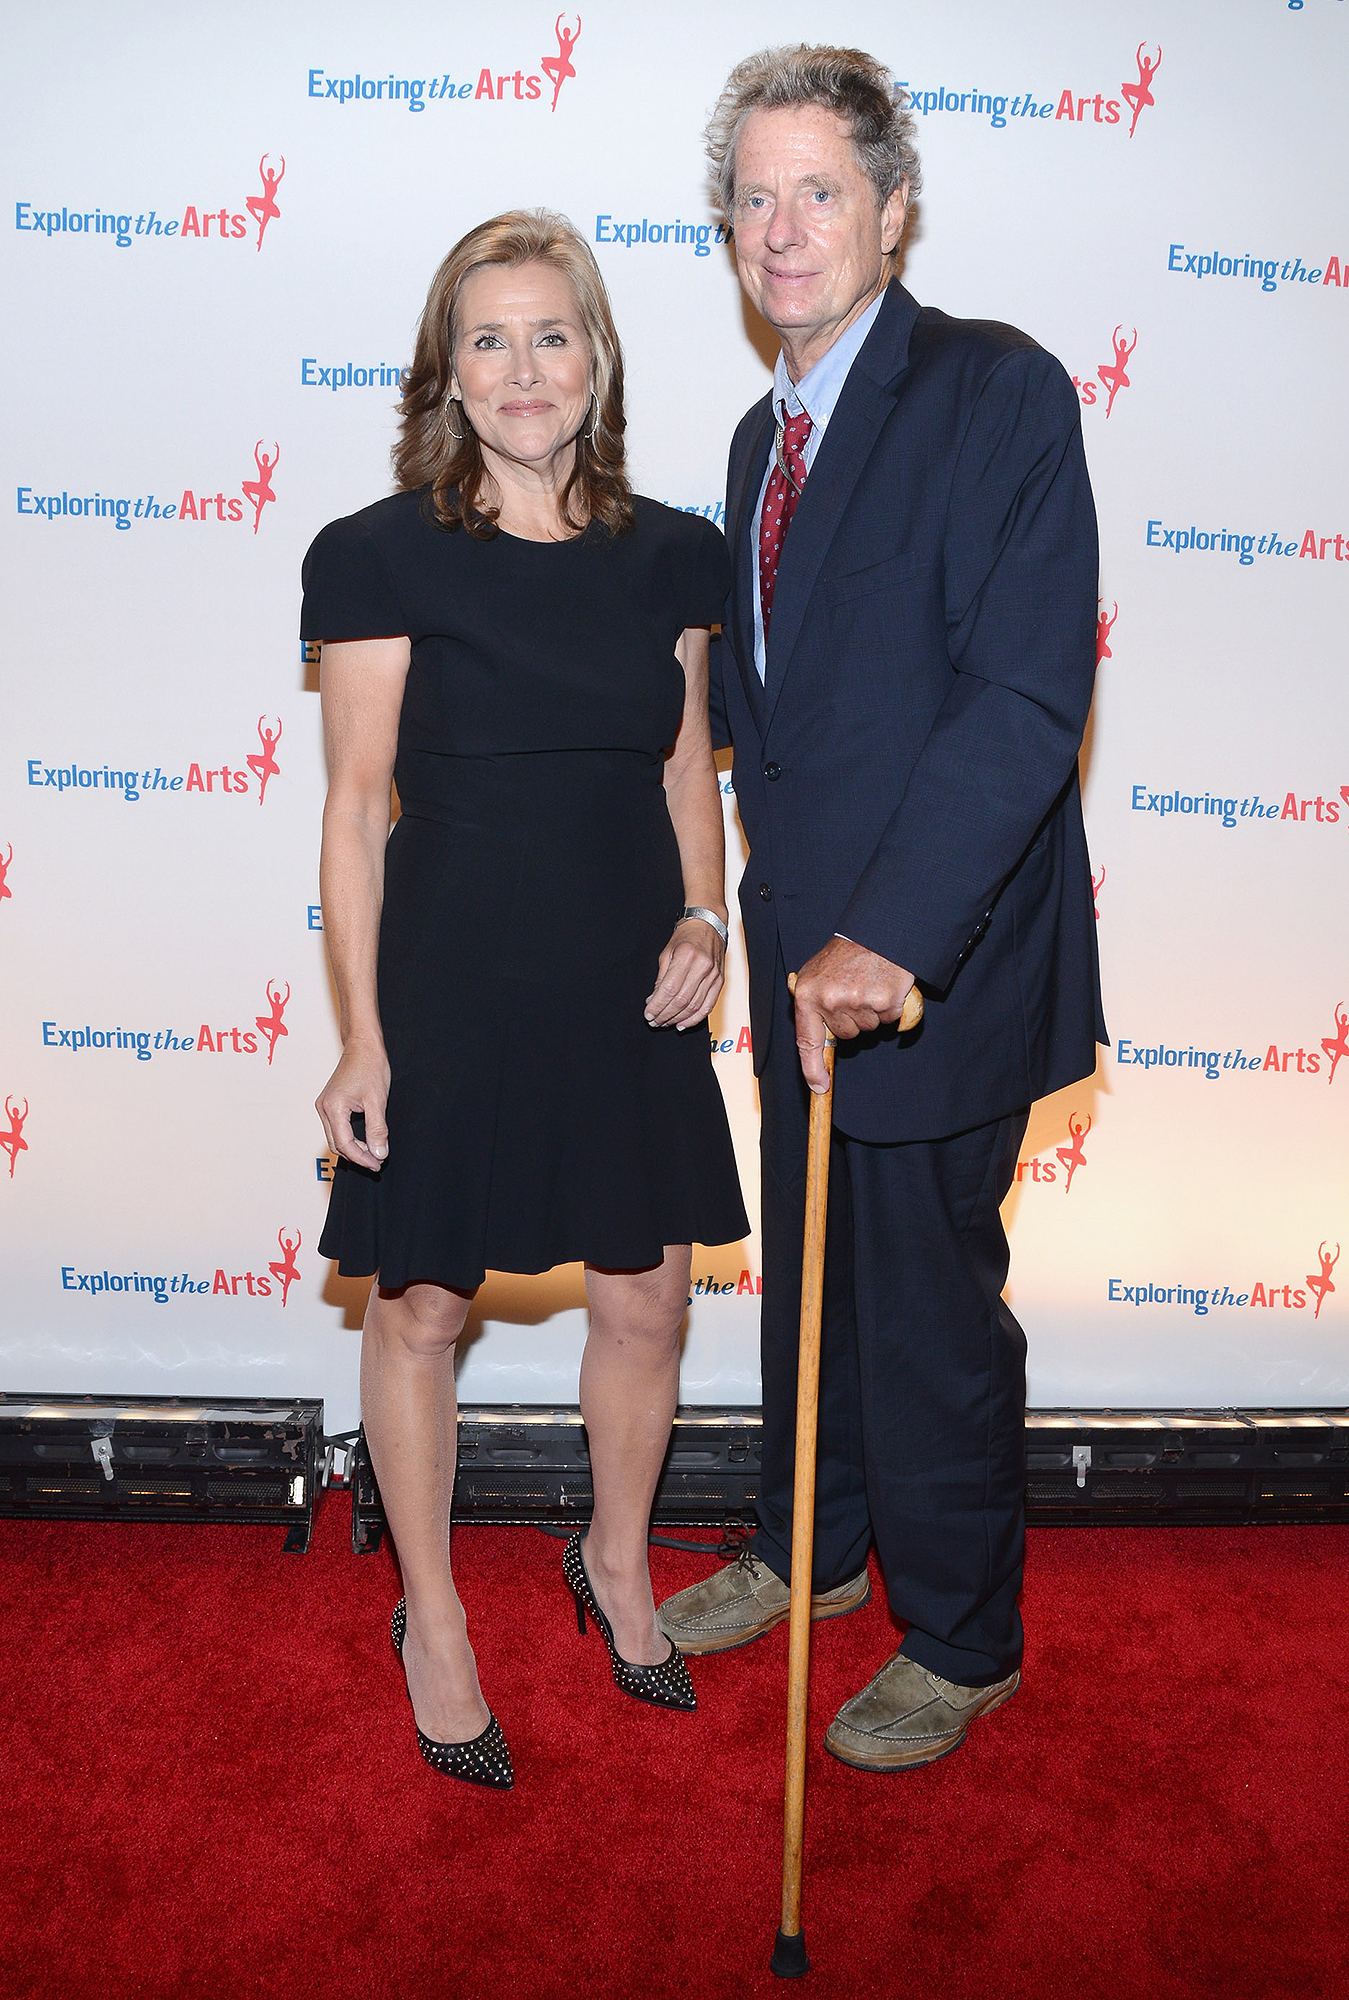 8th Annual Exploring the Arts Gala - Arrivals